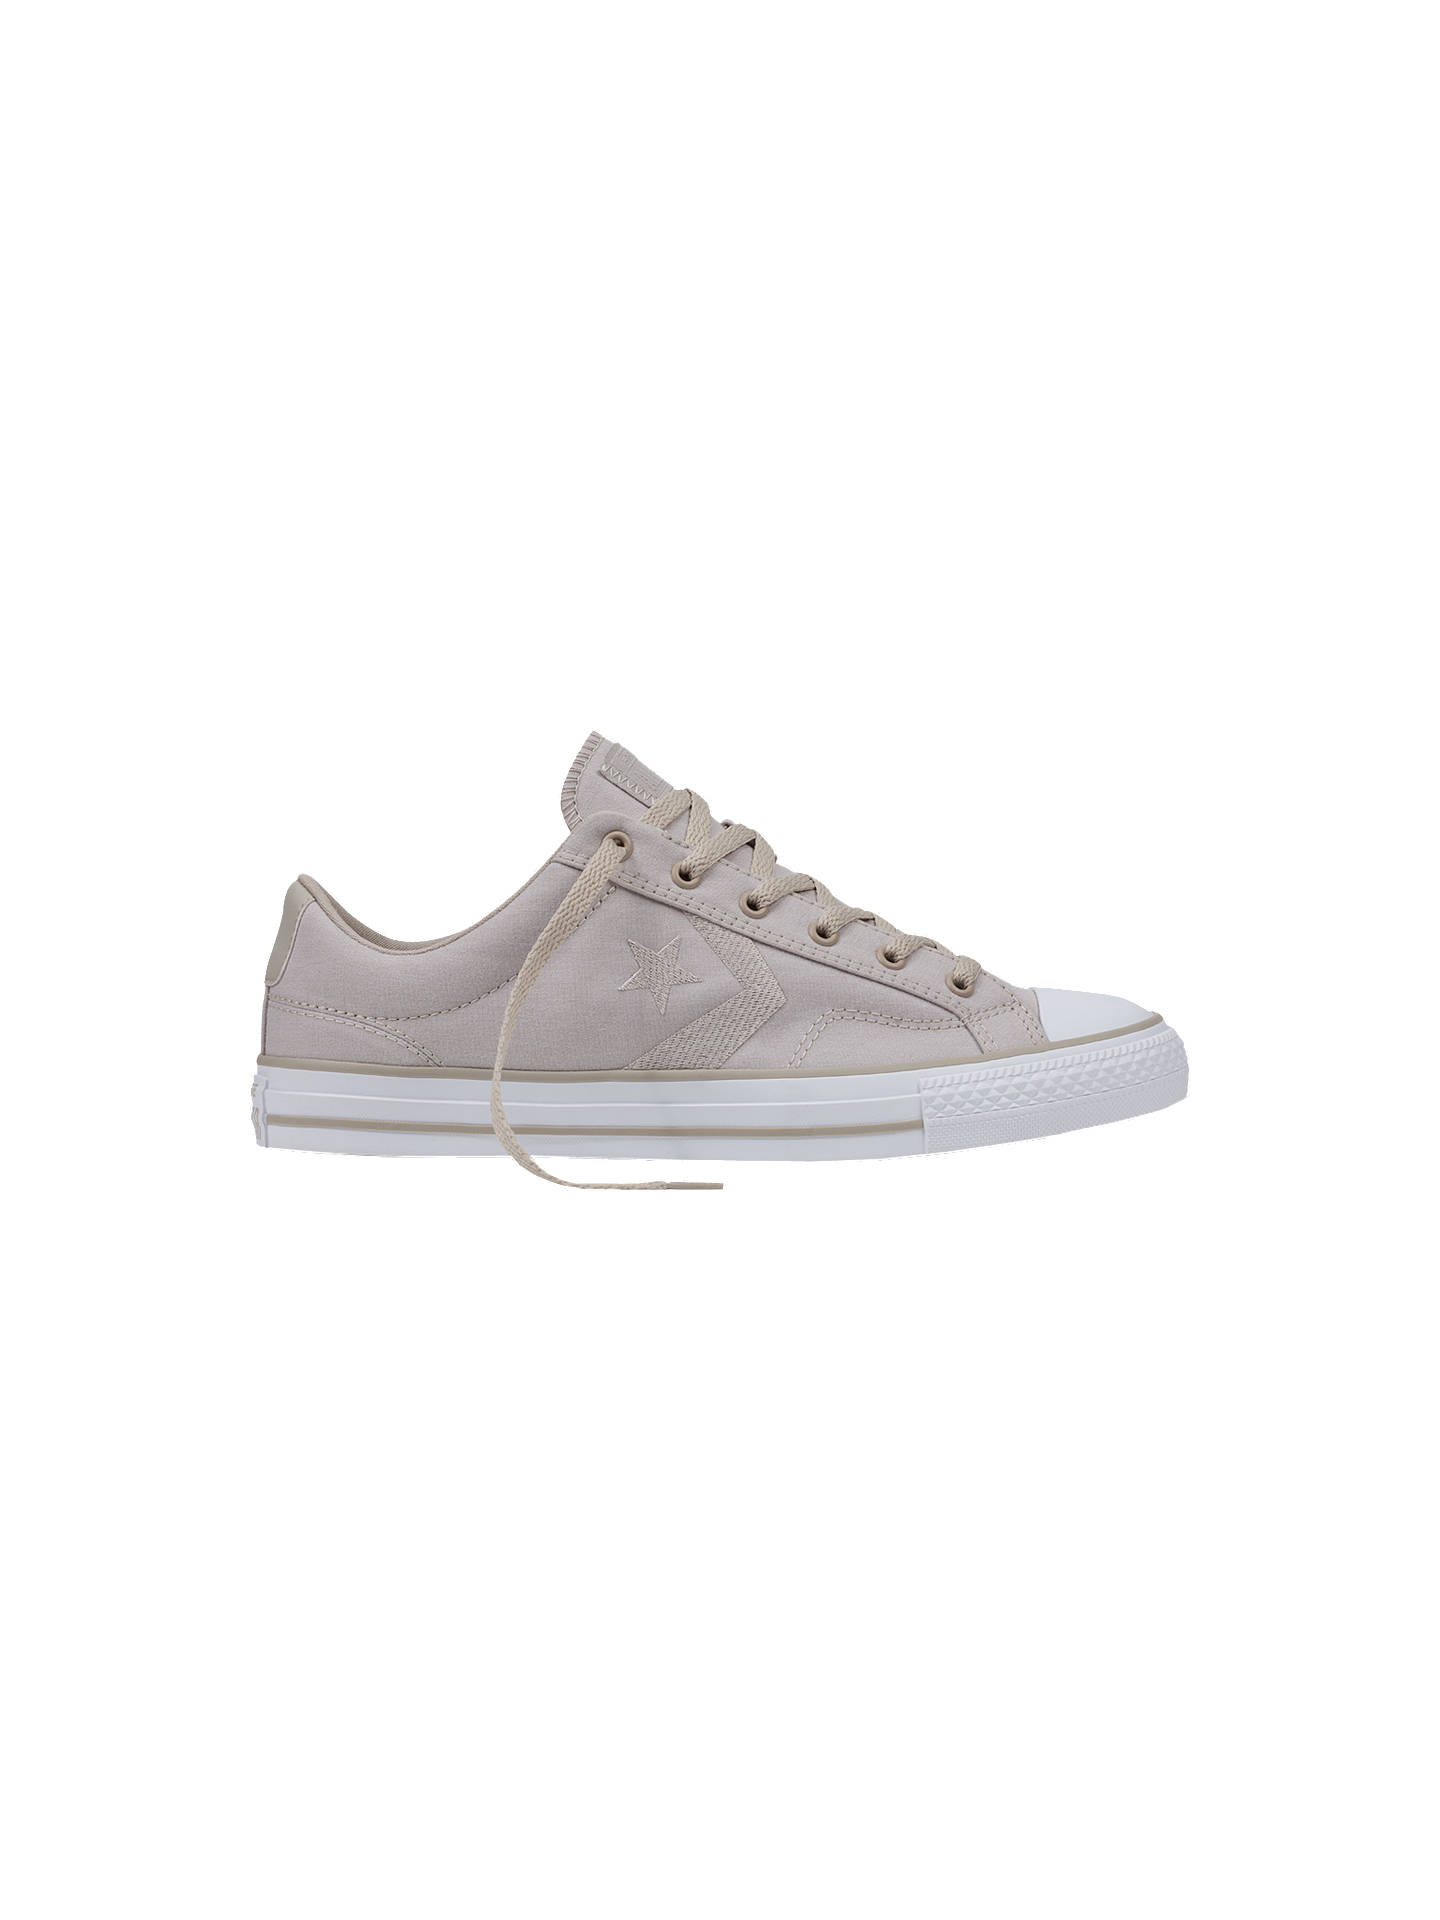 Converse Star Player Ox Trainers at John Lewis   Partners d24e1f1d3